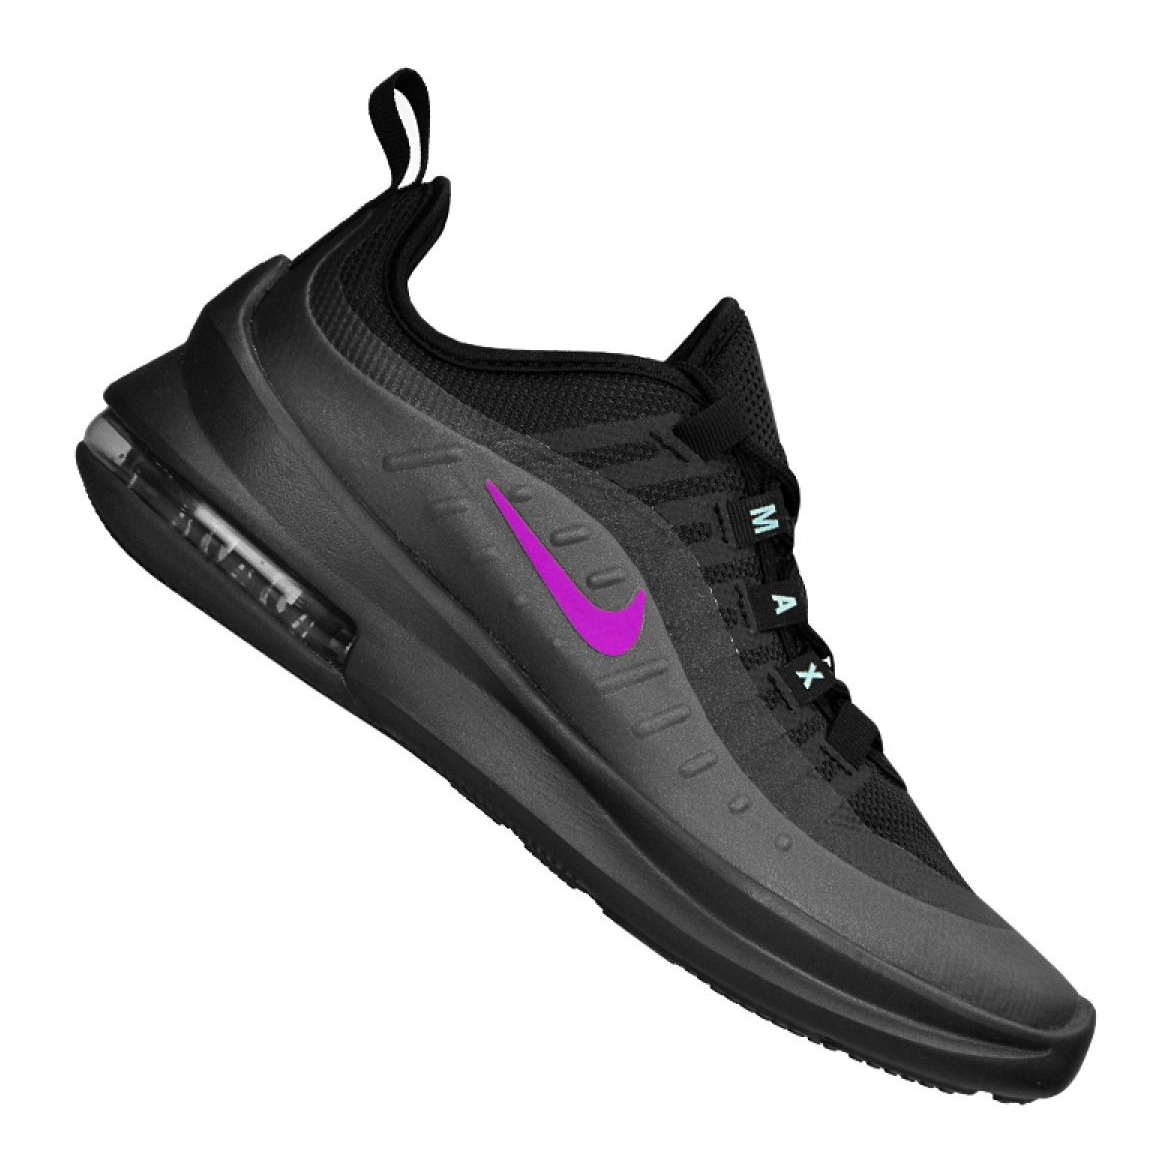 Details about Nike Air Max Axis (G0S) Jr AH5222 011 shoes black